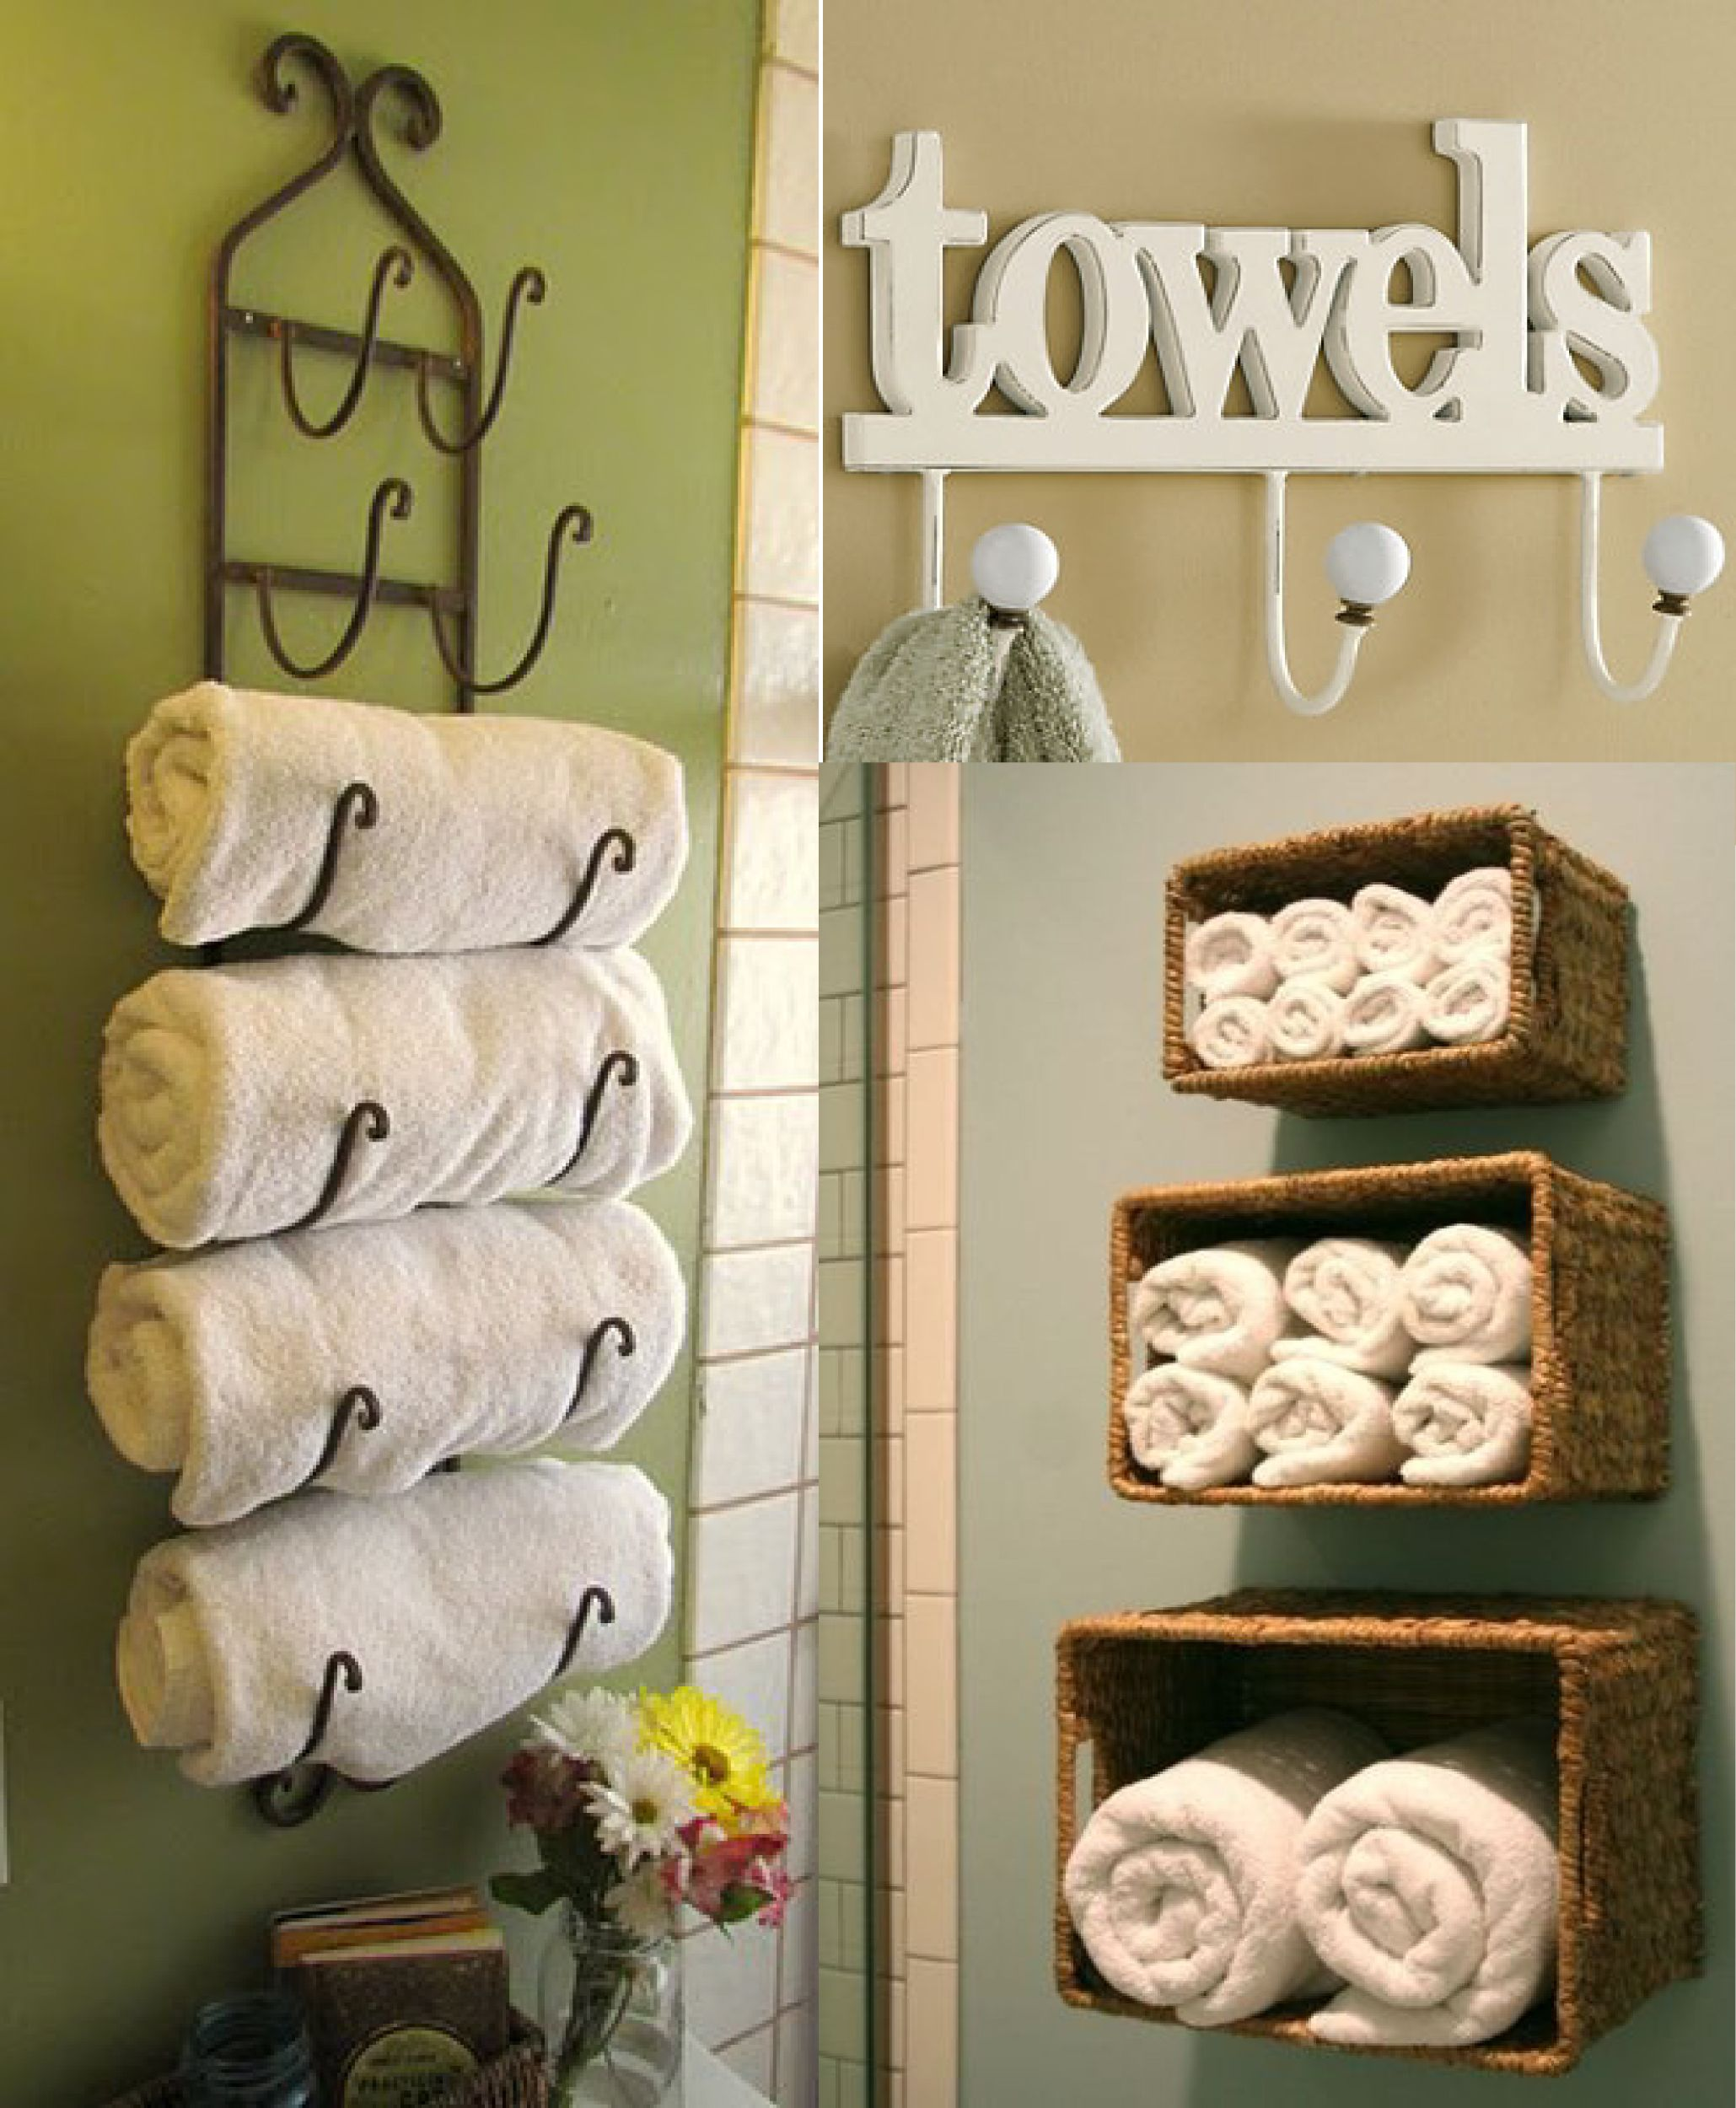 Bathroom Storage Ideas Pinterest By Shannon Rooks Corporate - Decorative towel racks for bathrooms for small bathroom ideas